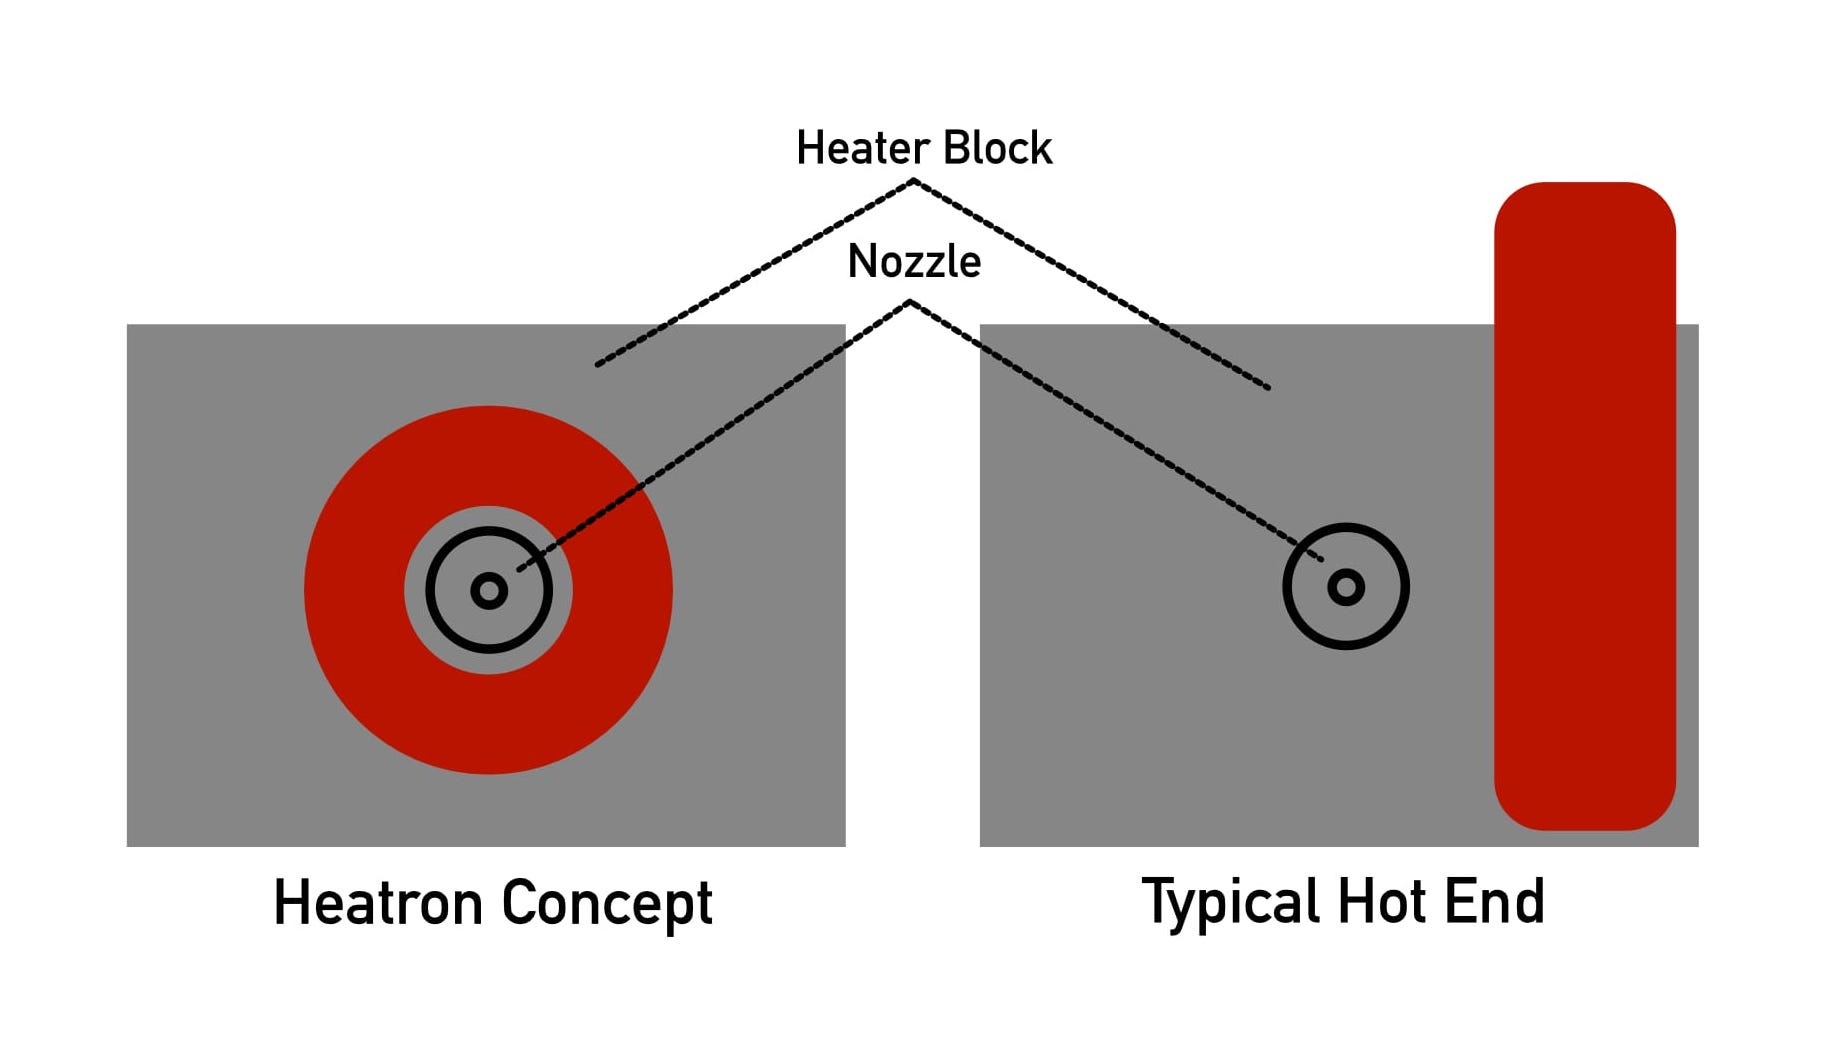 Contrasting the Heatron concept vs the traditional 3D printer cartridge heater approach